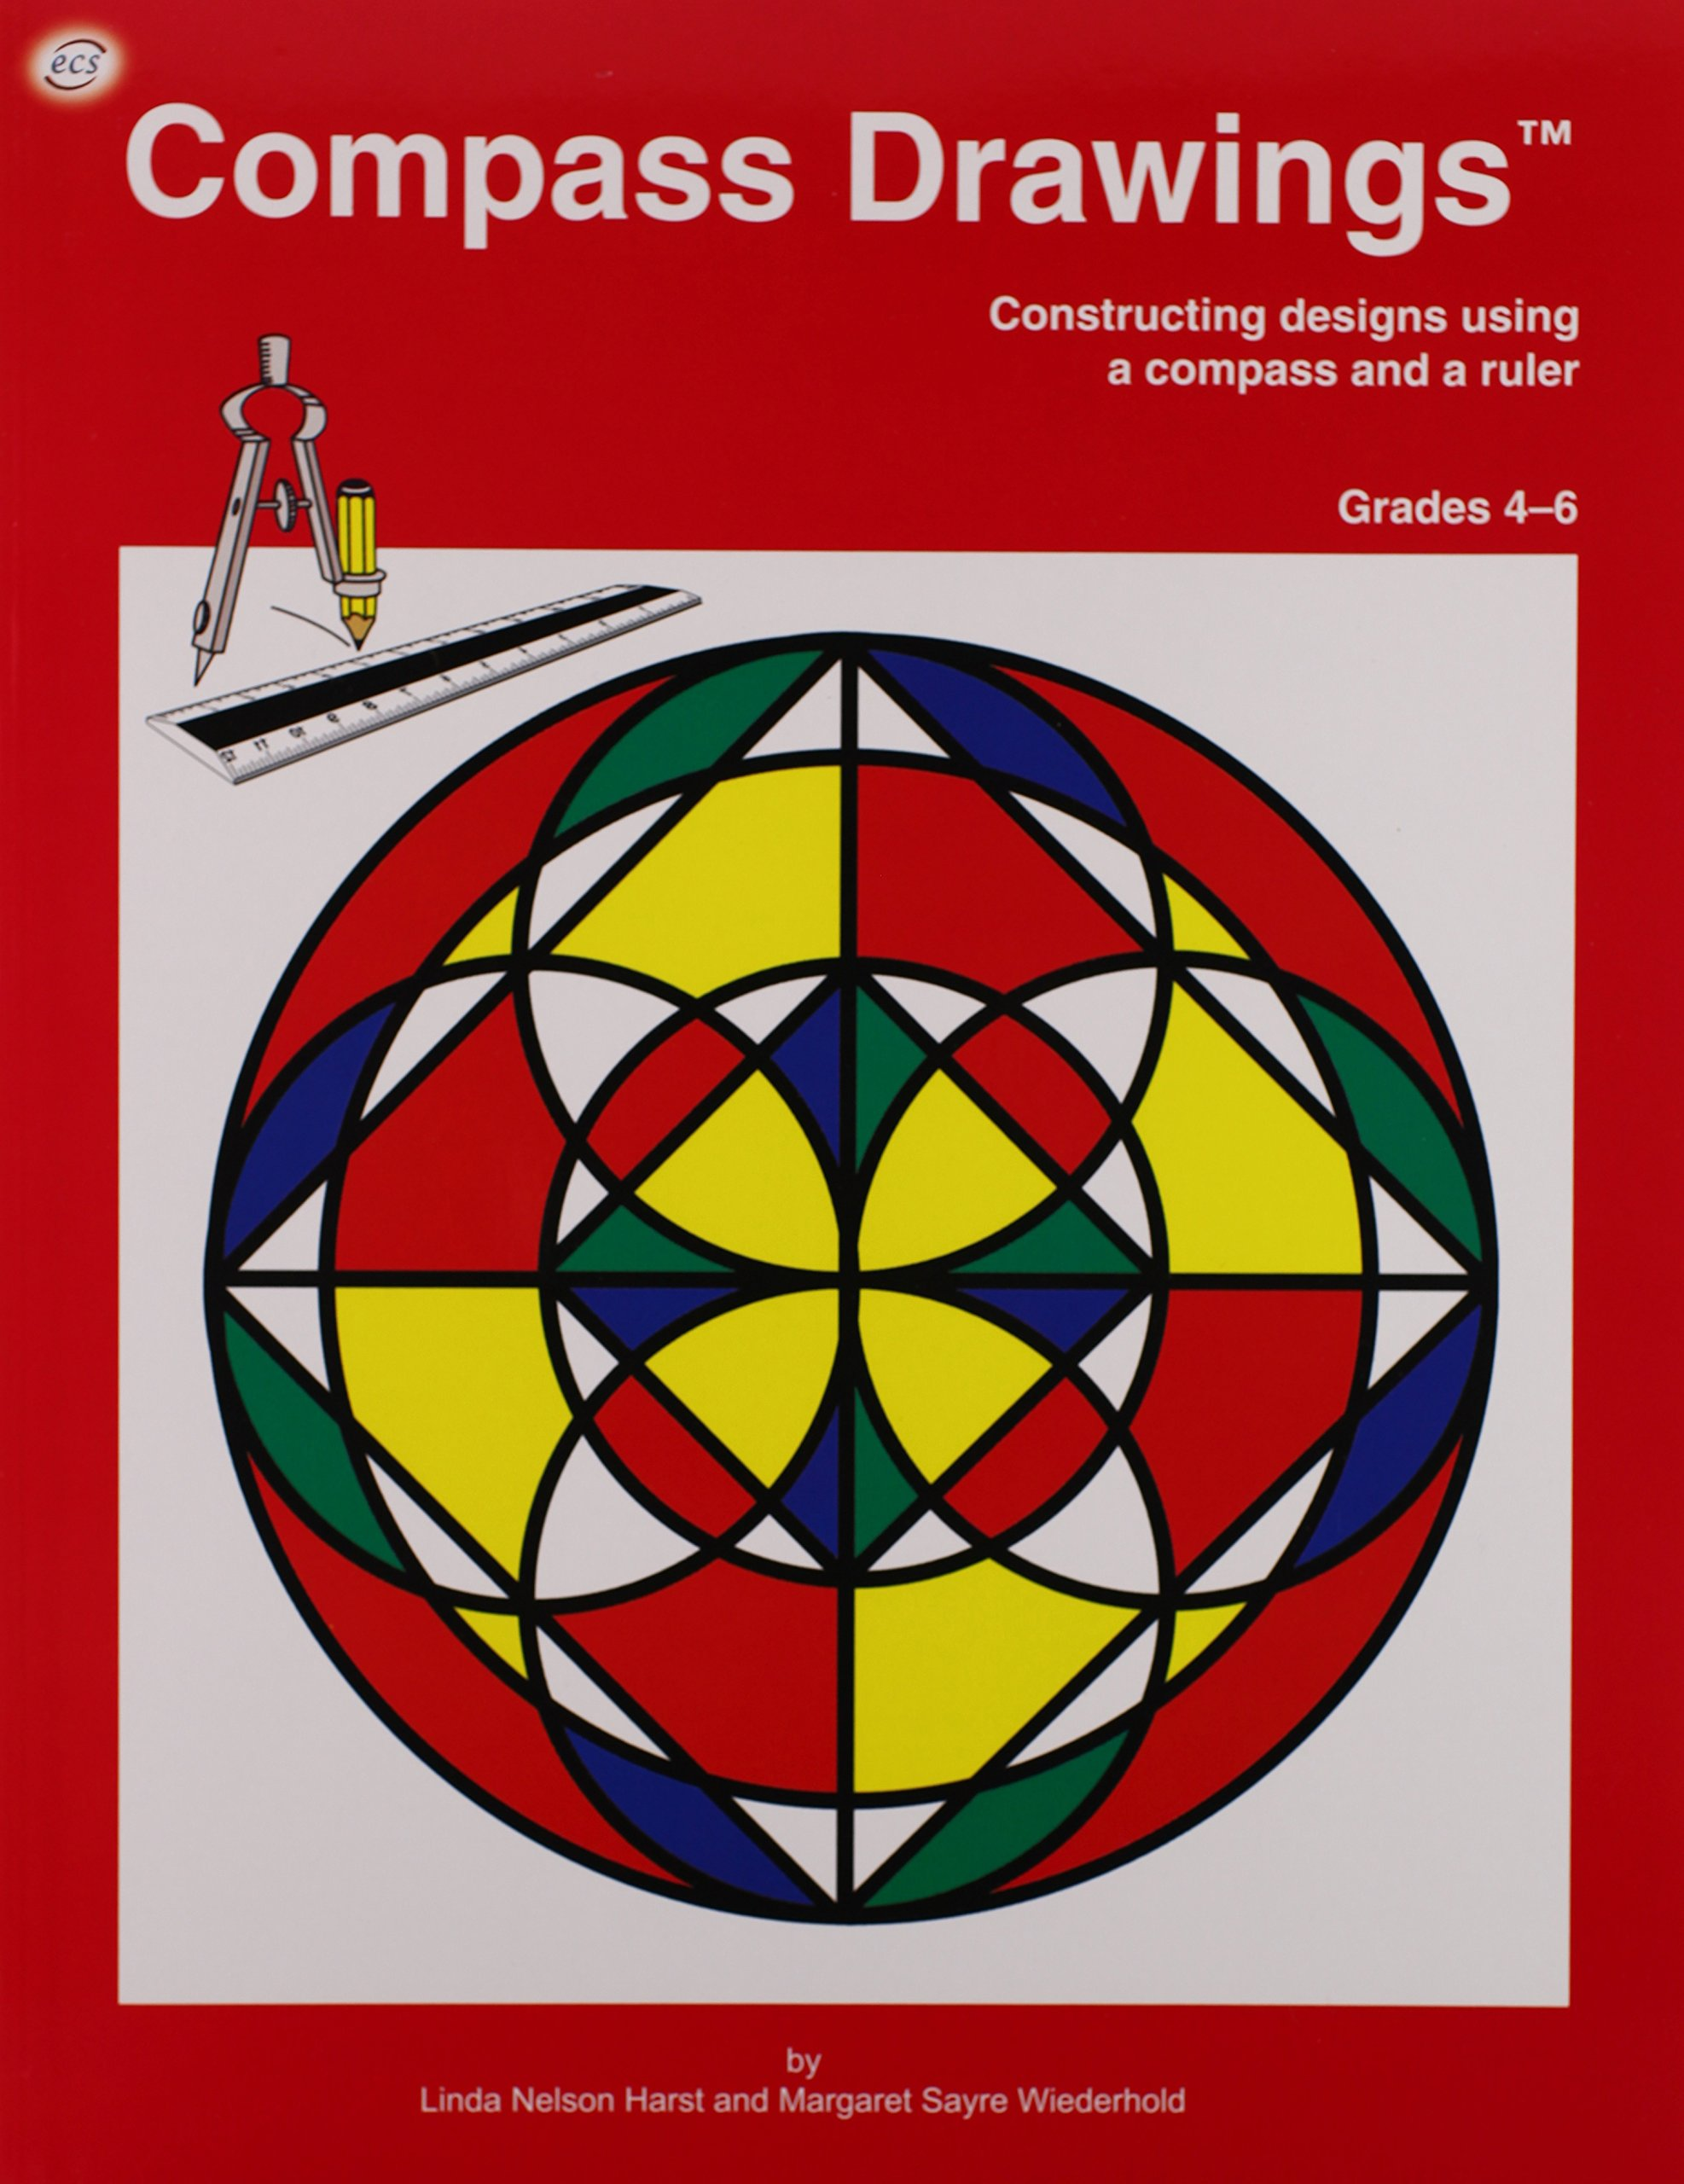 Download Compass Drawings: Construction designs using a compass and a ruler (Grades 4-6) ebook